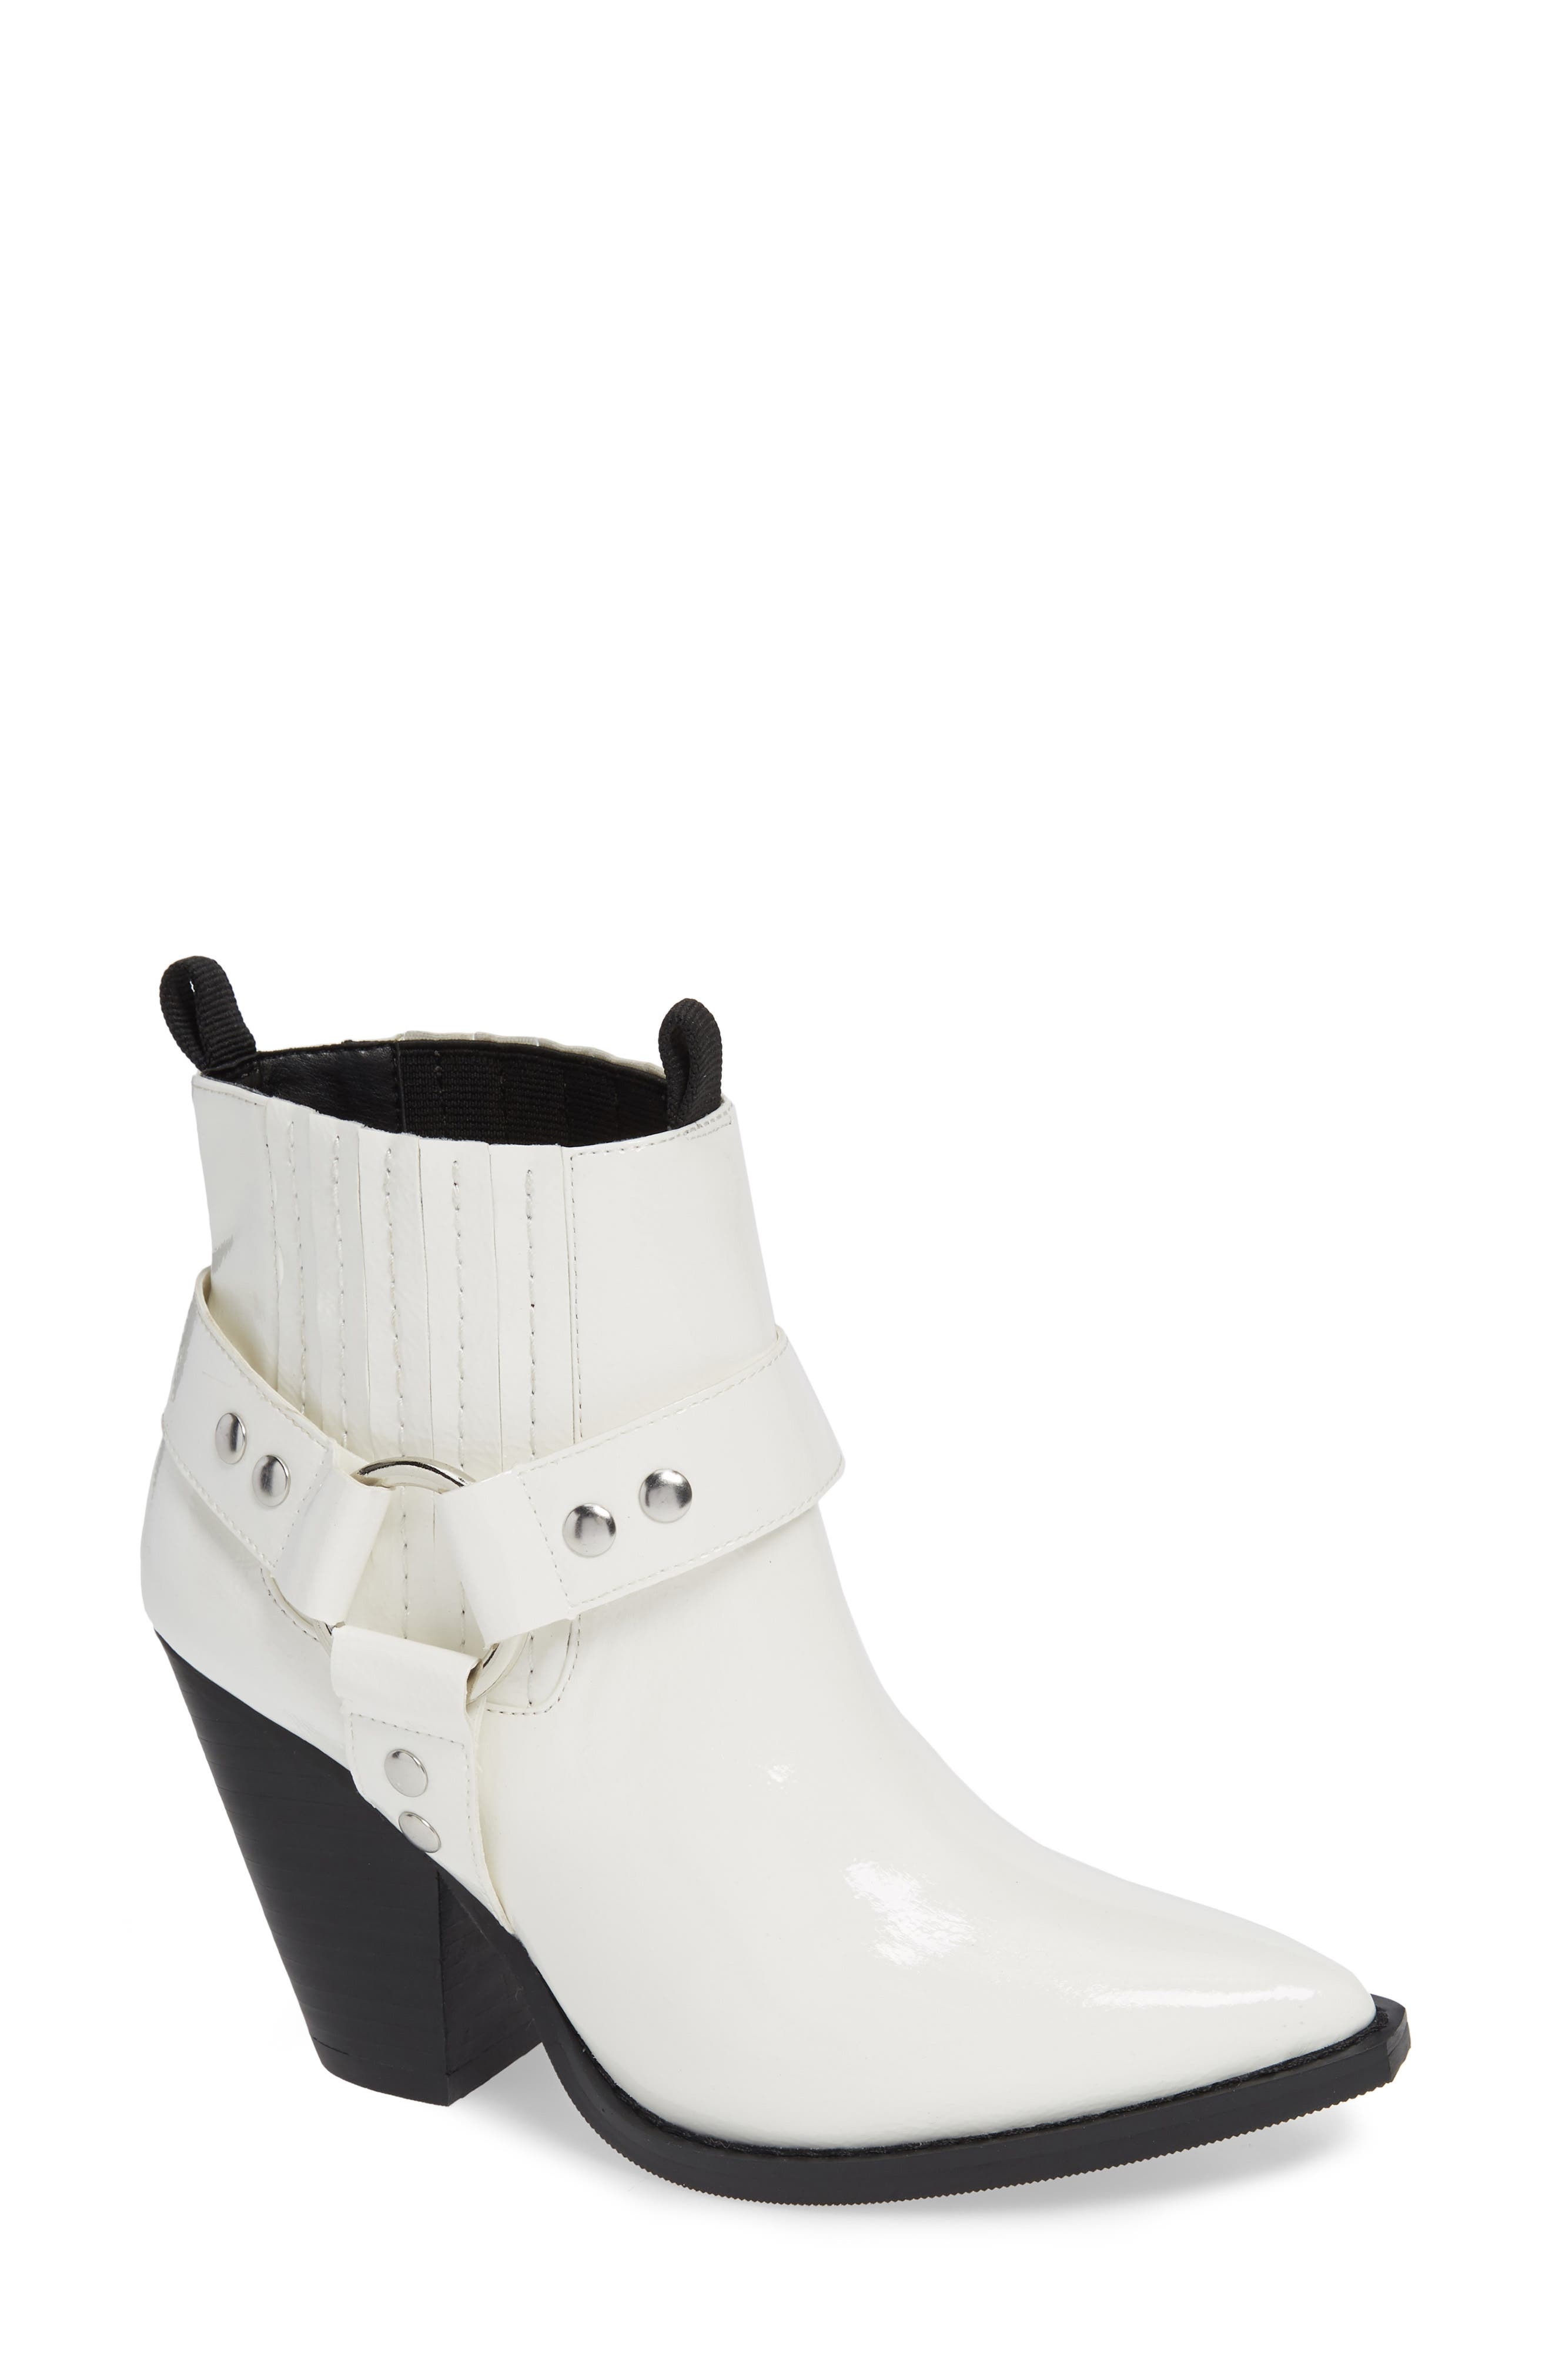 Lincoln Bootie,                         Main,                         color, WHITE